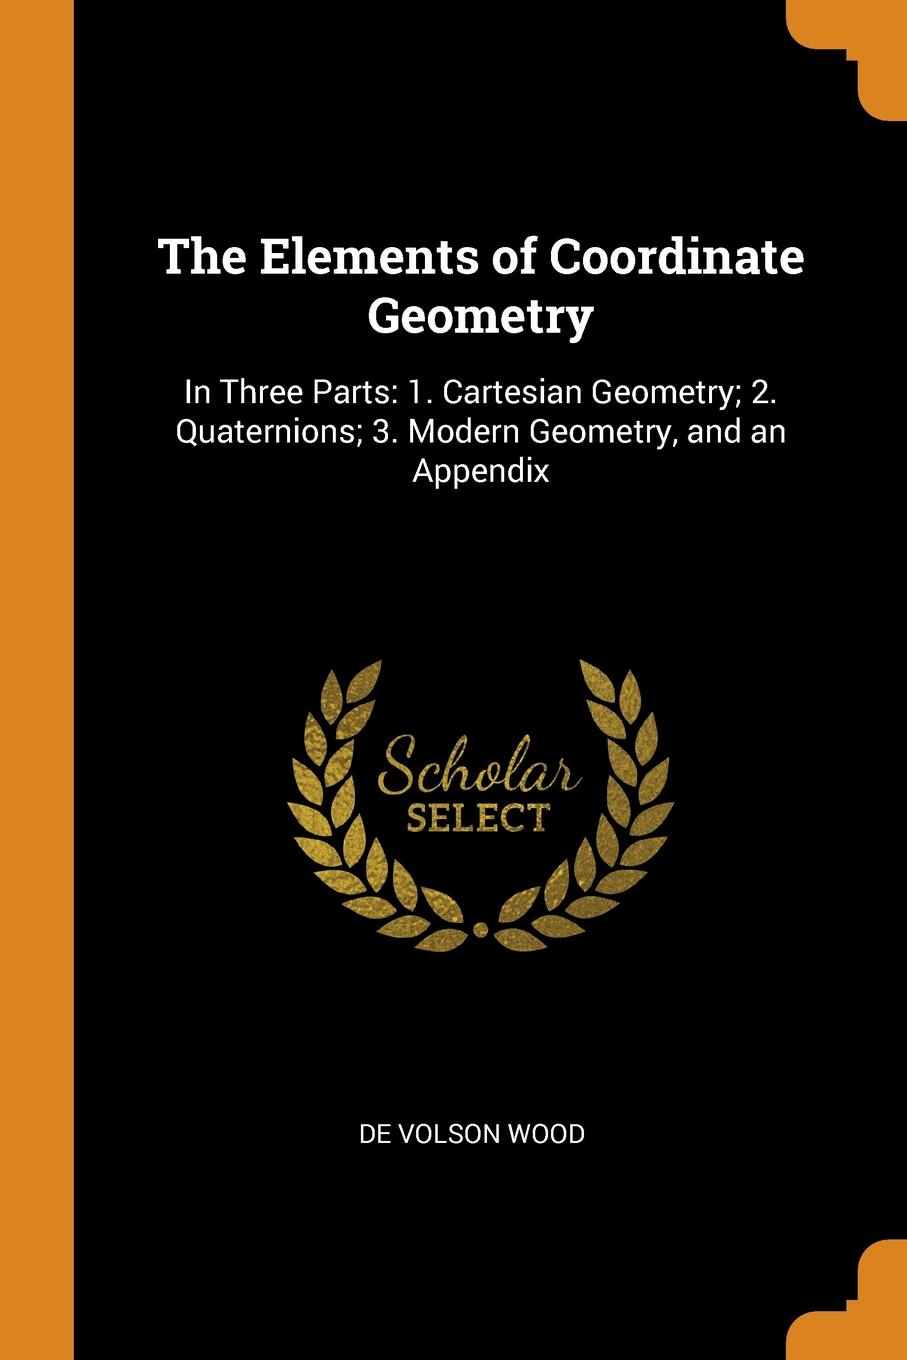 The Elements of Coordinate Geometry. In Three Parts: 1. Cartesian Geometry; 2. Quaternions; 3. Modern Geometry, and an Appendix